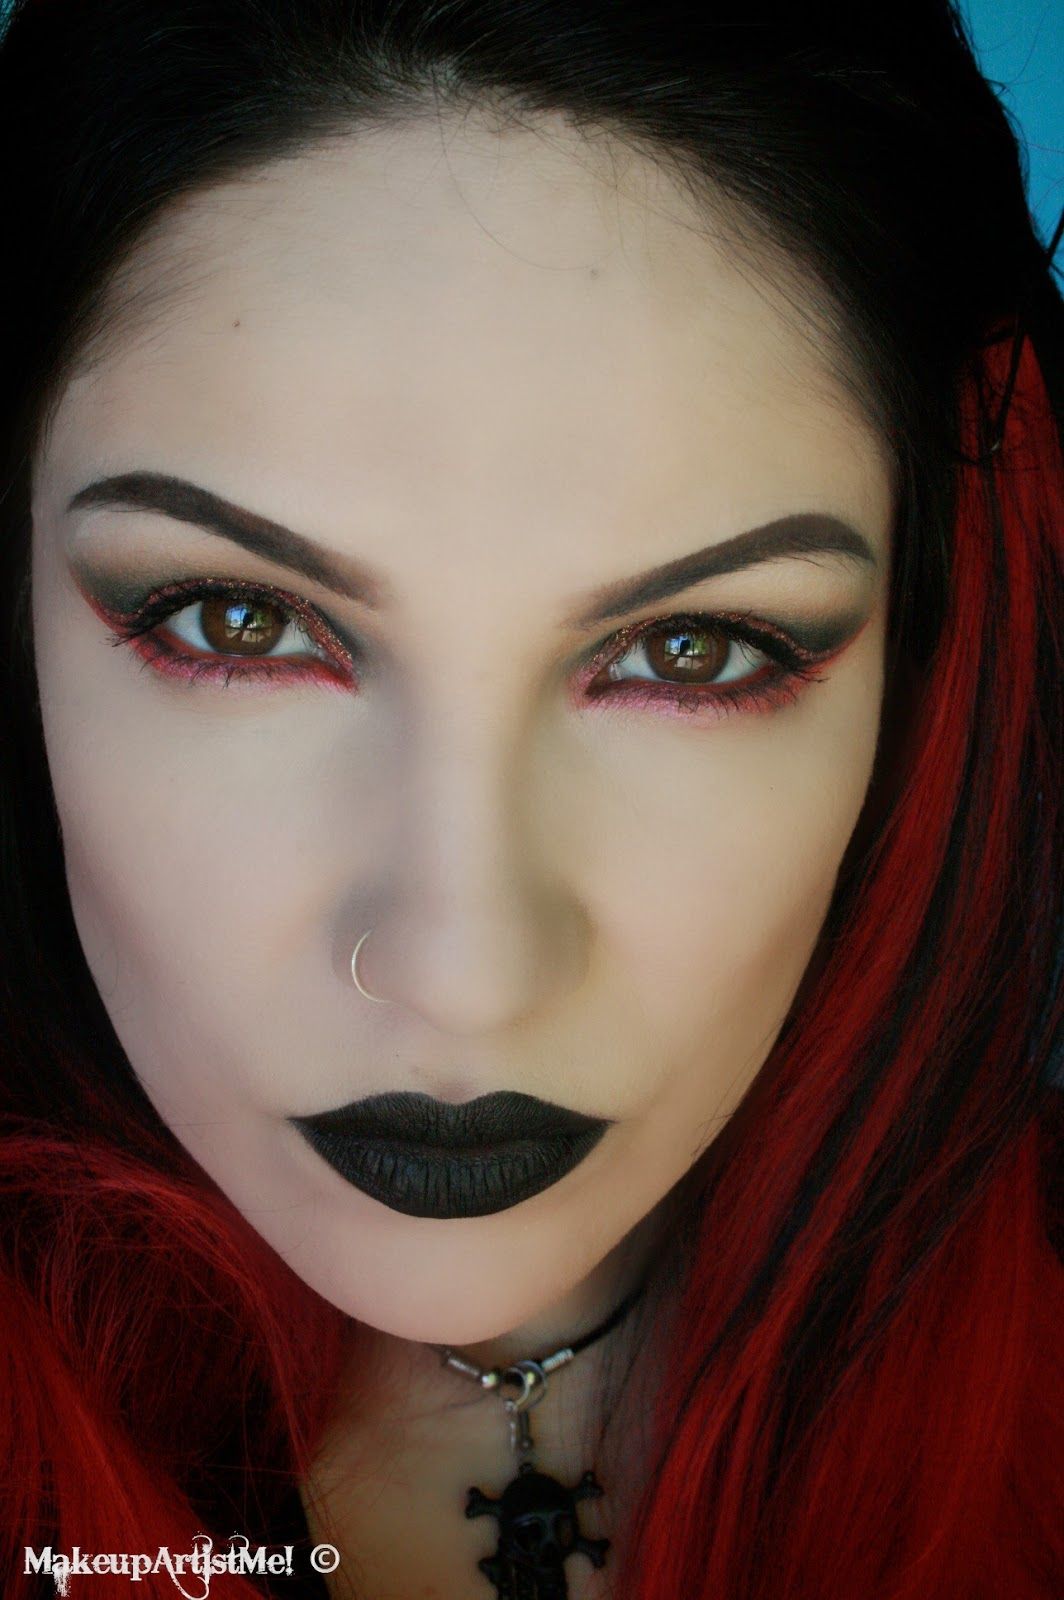 Make Up Tutorial For Girls: Make-up Artist Me!: My Goth! Makeup Tutorial